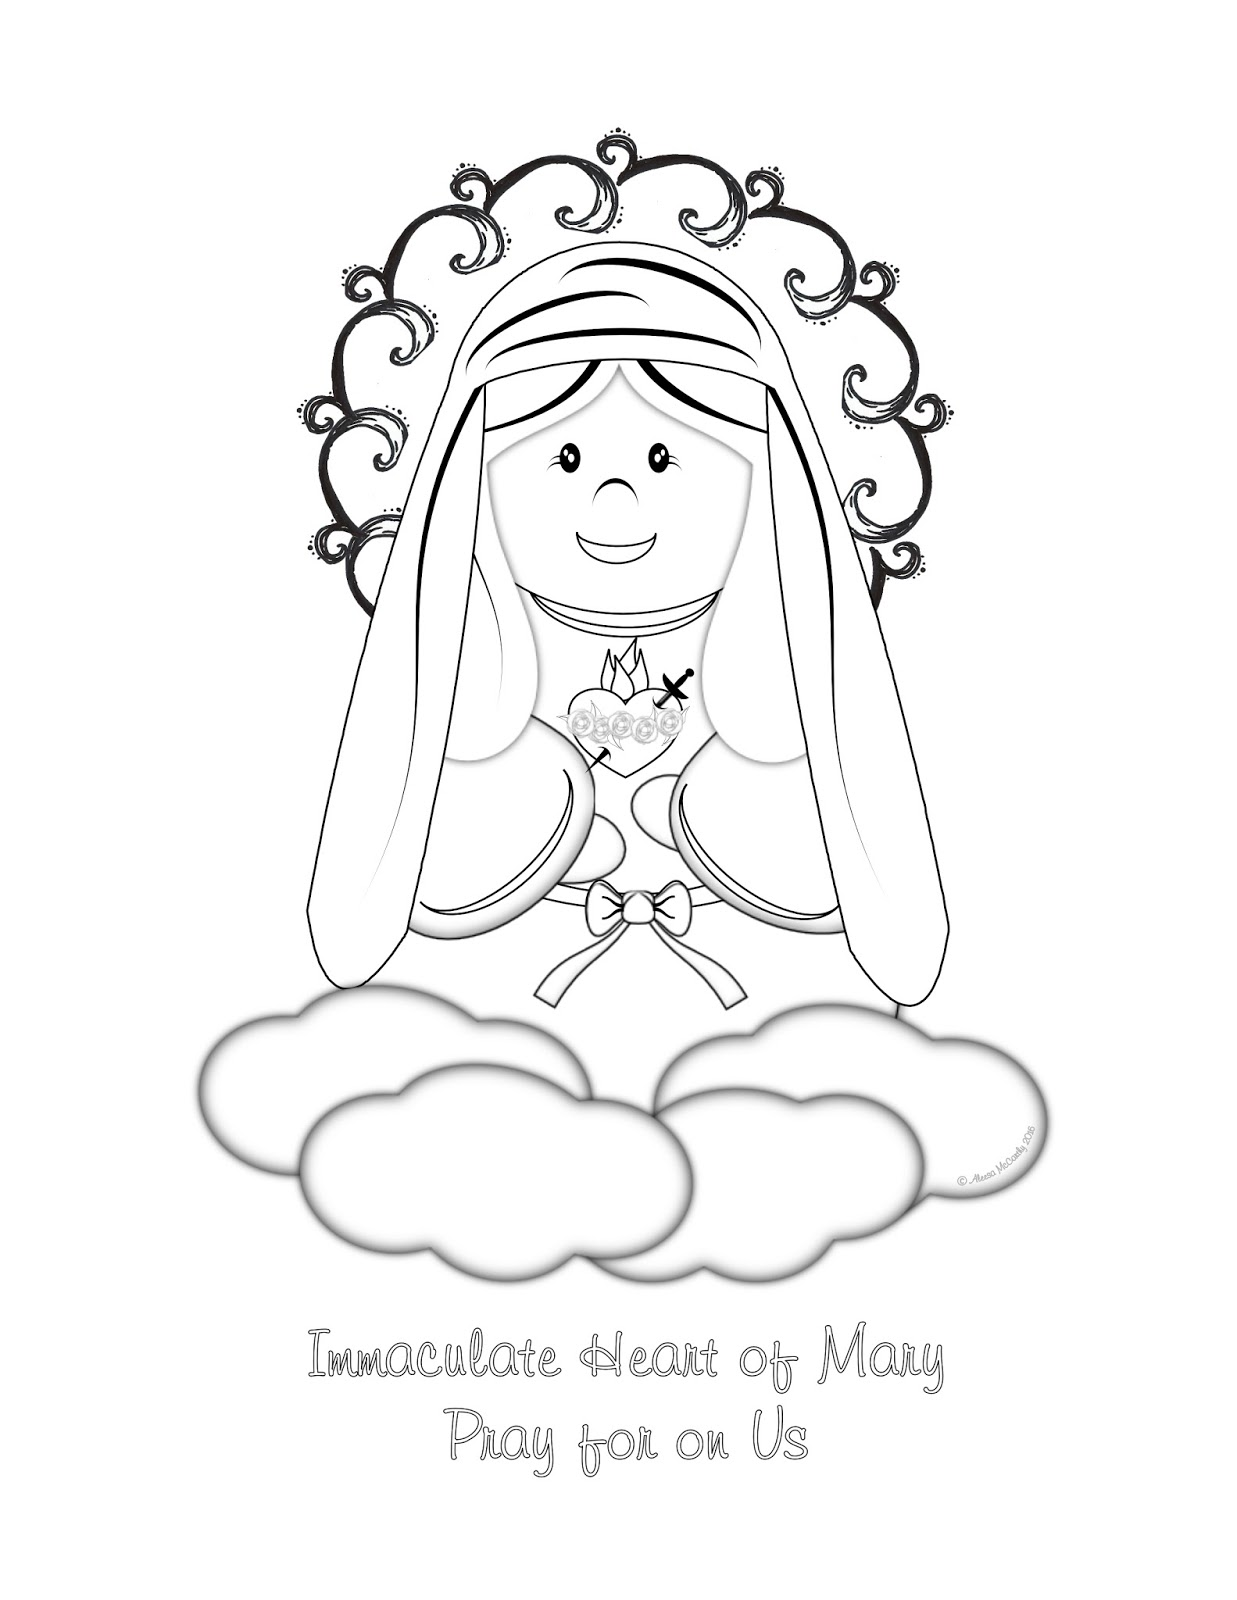 Free Kids Catholic Coloring Pages, Download Free Clip Art, Free ... | 1600x1237